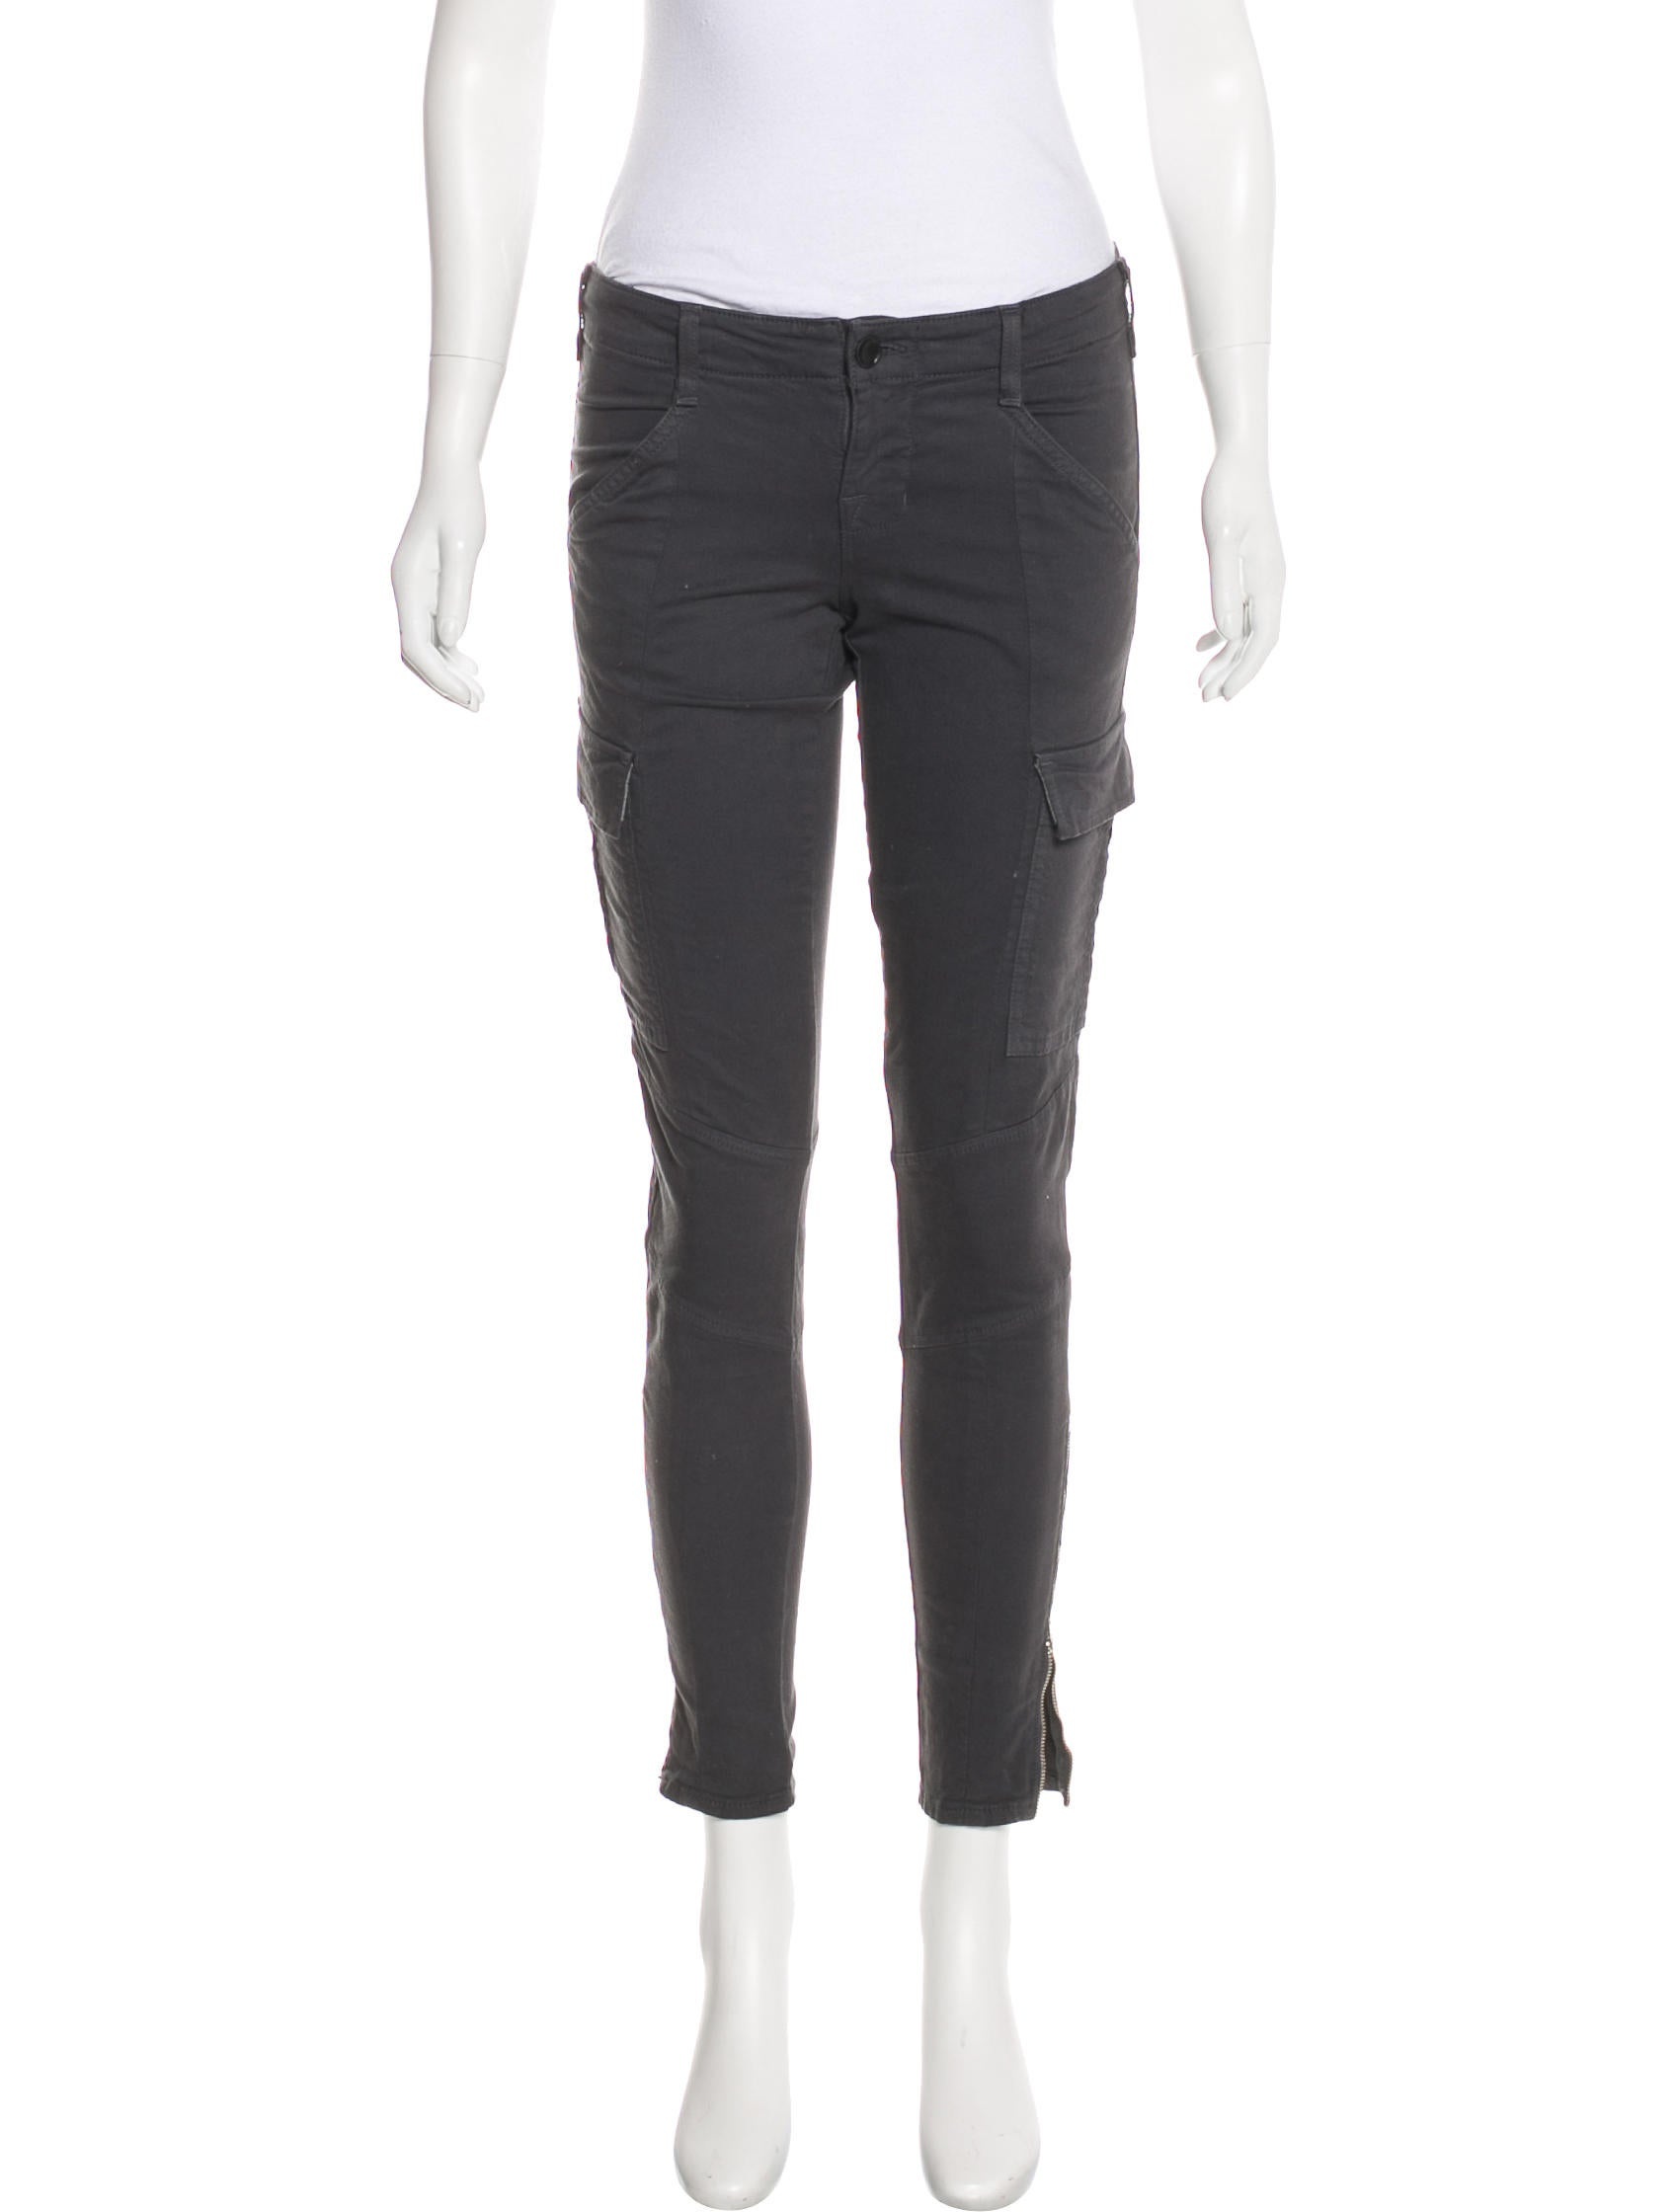 J Brand Low-Rise Skinny Pants - Clothing